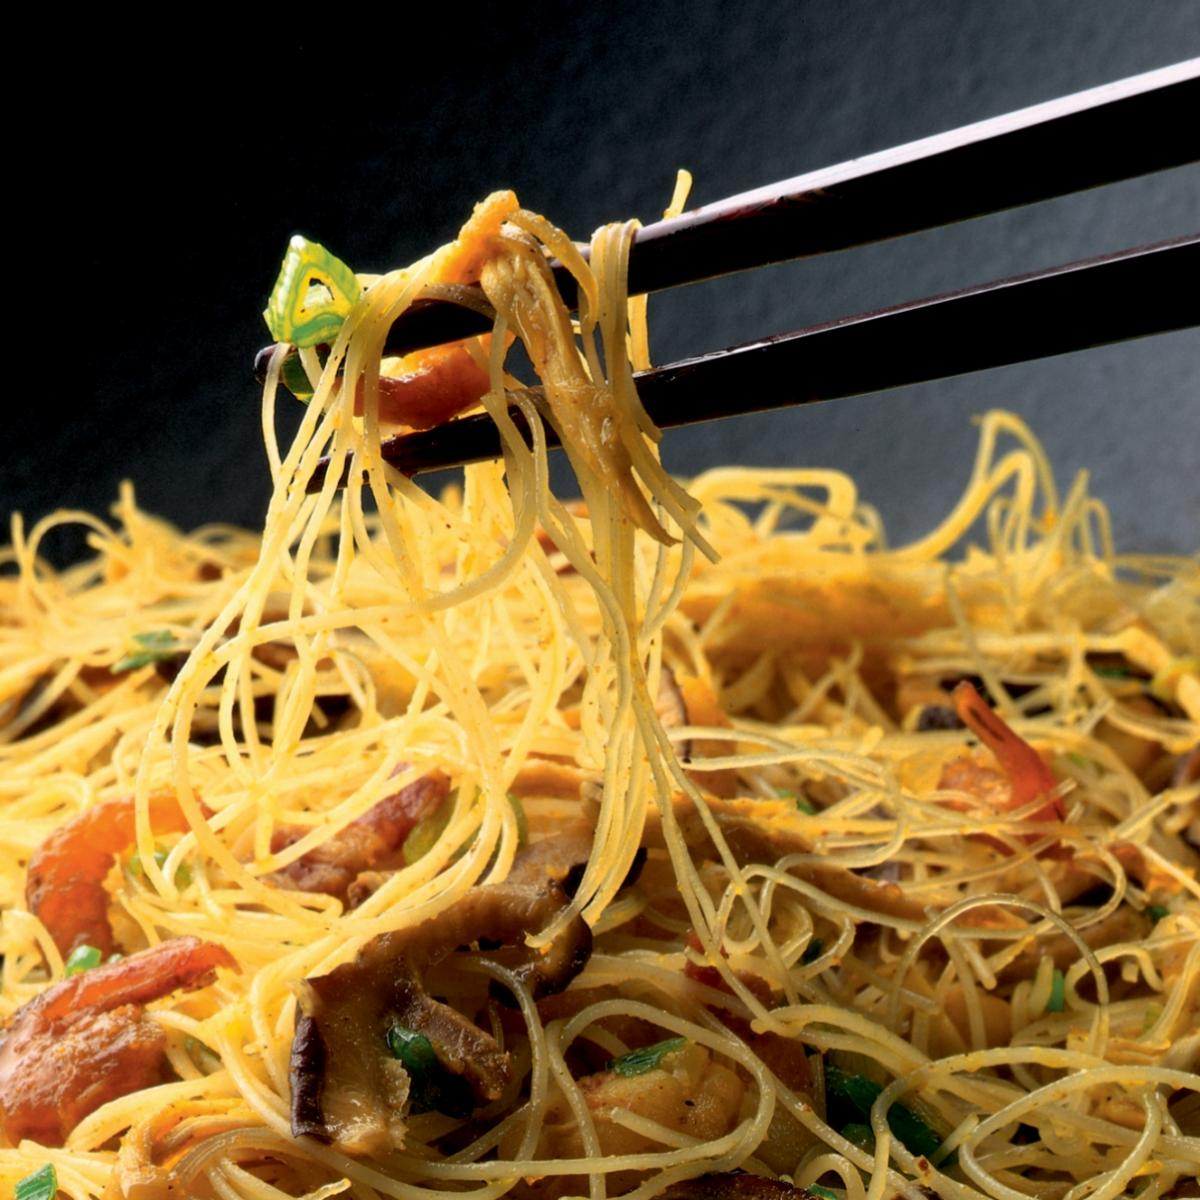 A picture of Delia's Singapore Stir-fried Noodles recipe